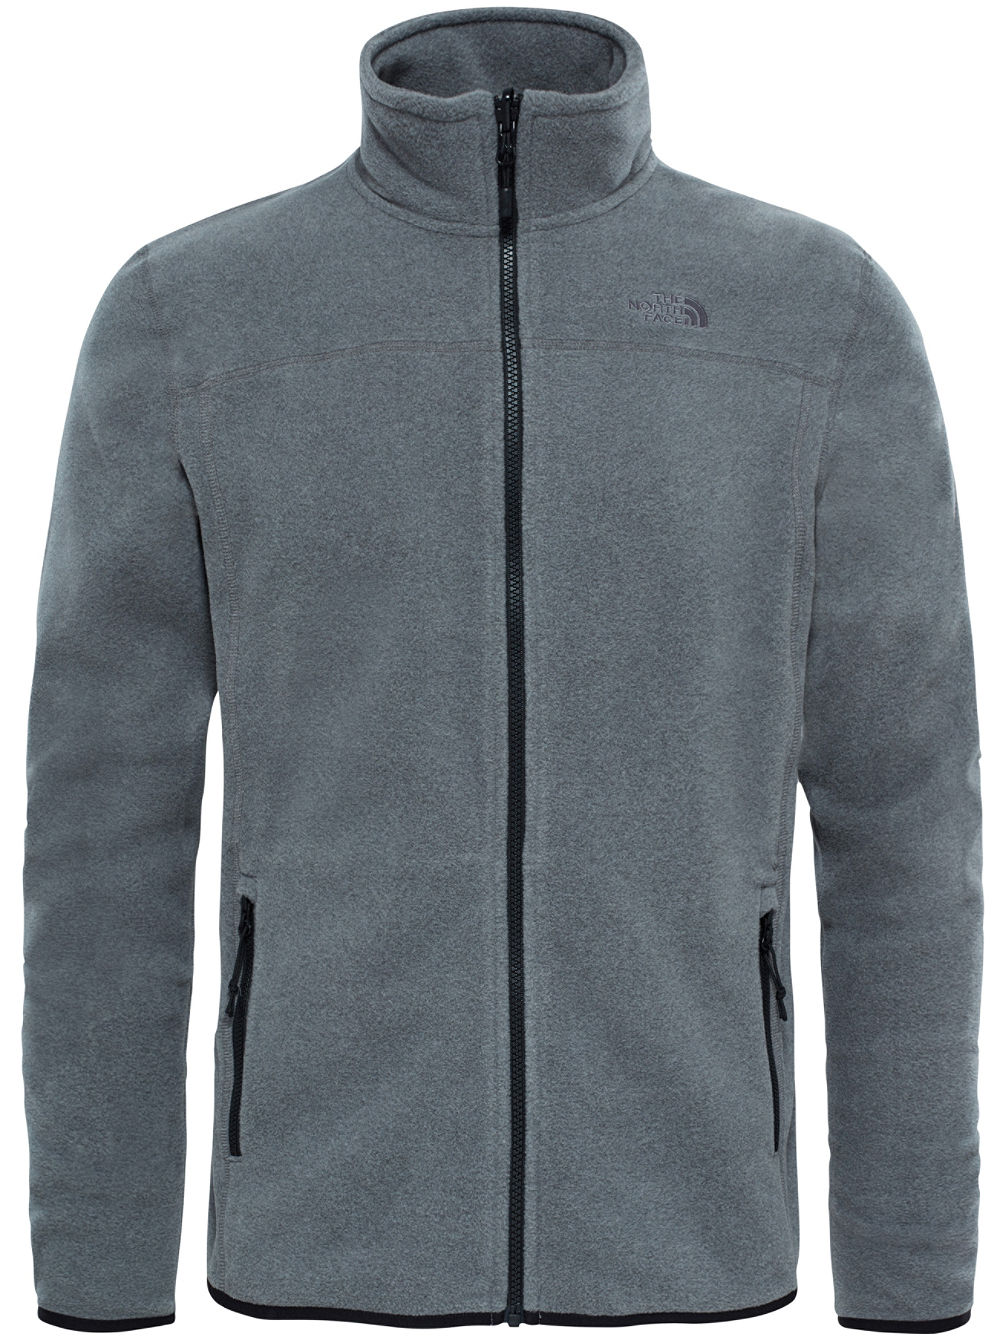 100 Glacier Full Zip Fleece Jacket